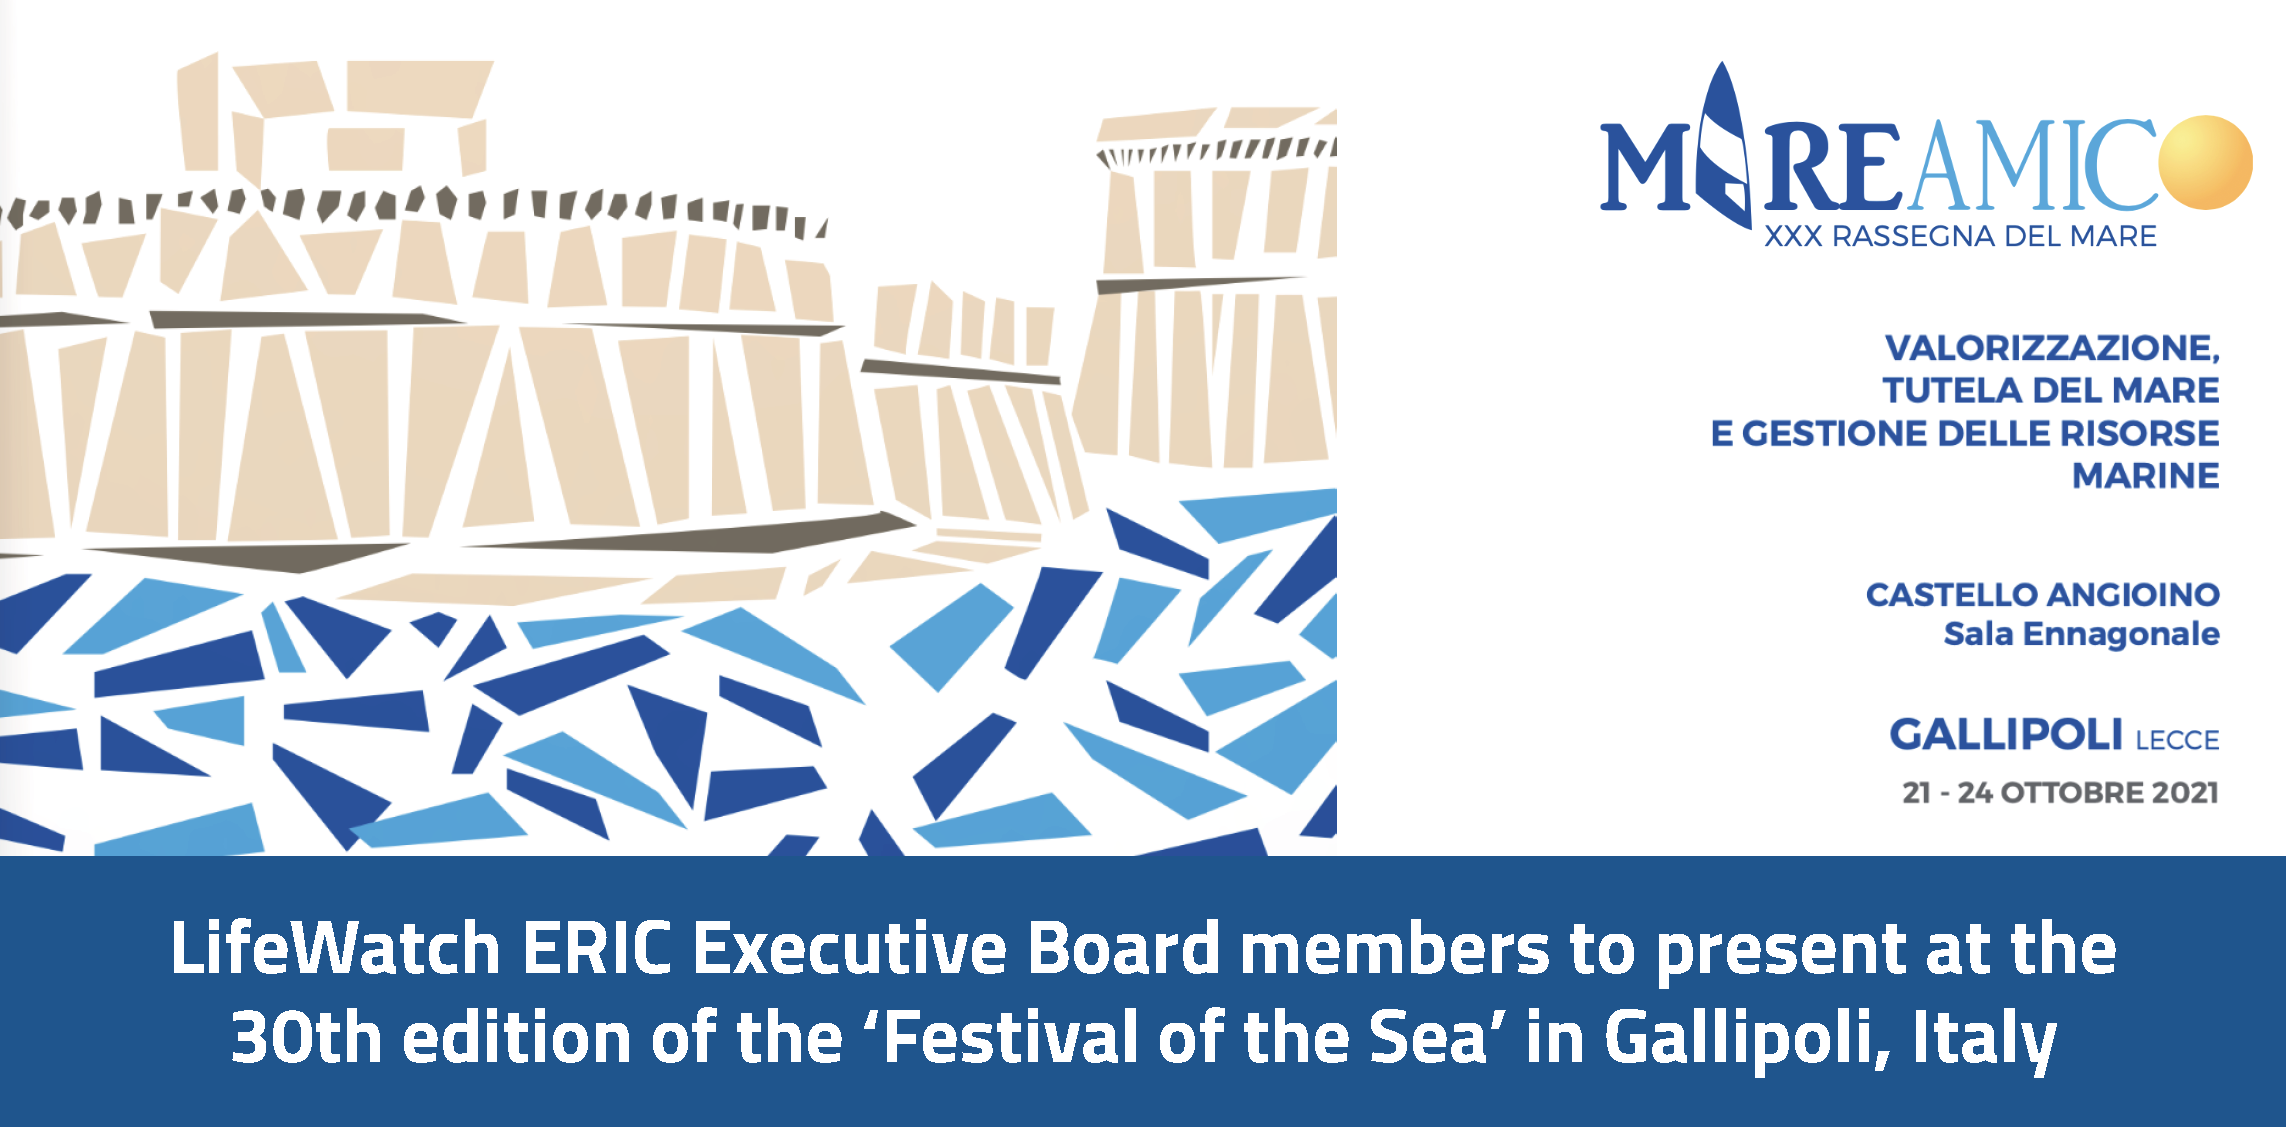 LifeWatch ERIC Executive Board members to speak at the 'XXX° Rassegna del mare'